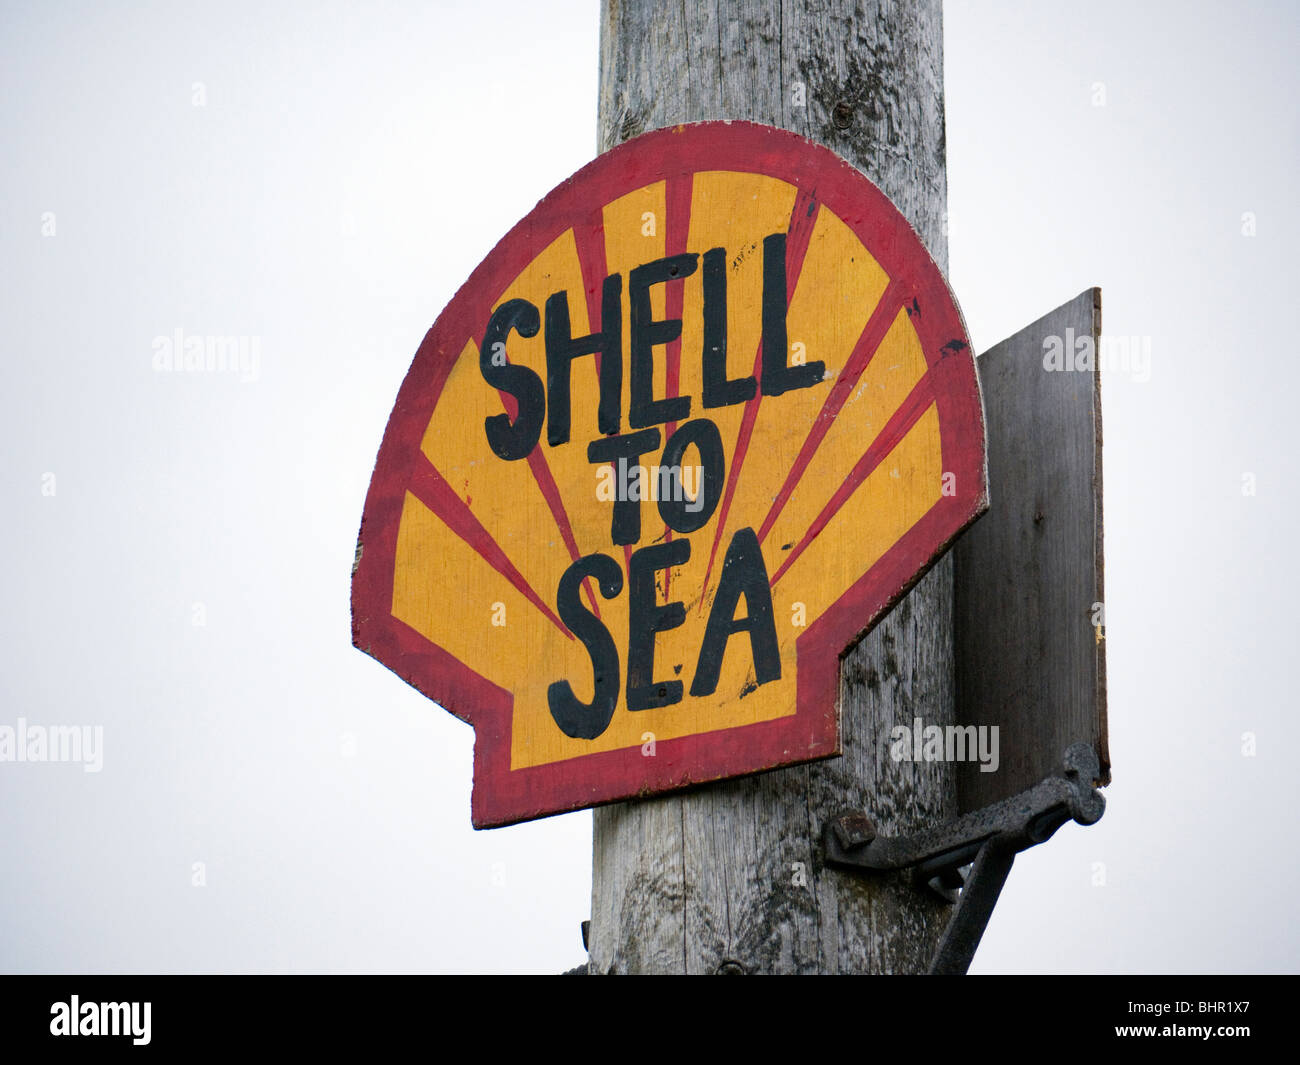 Protest sign erected by campaign groups who oppose the Corrib Natural Gas project by Royal Dutch Shell in County - Stock Image